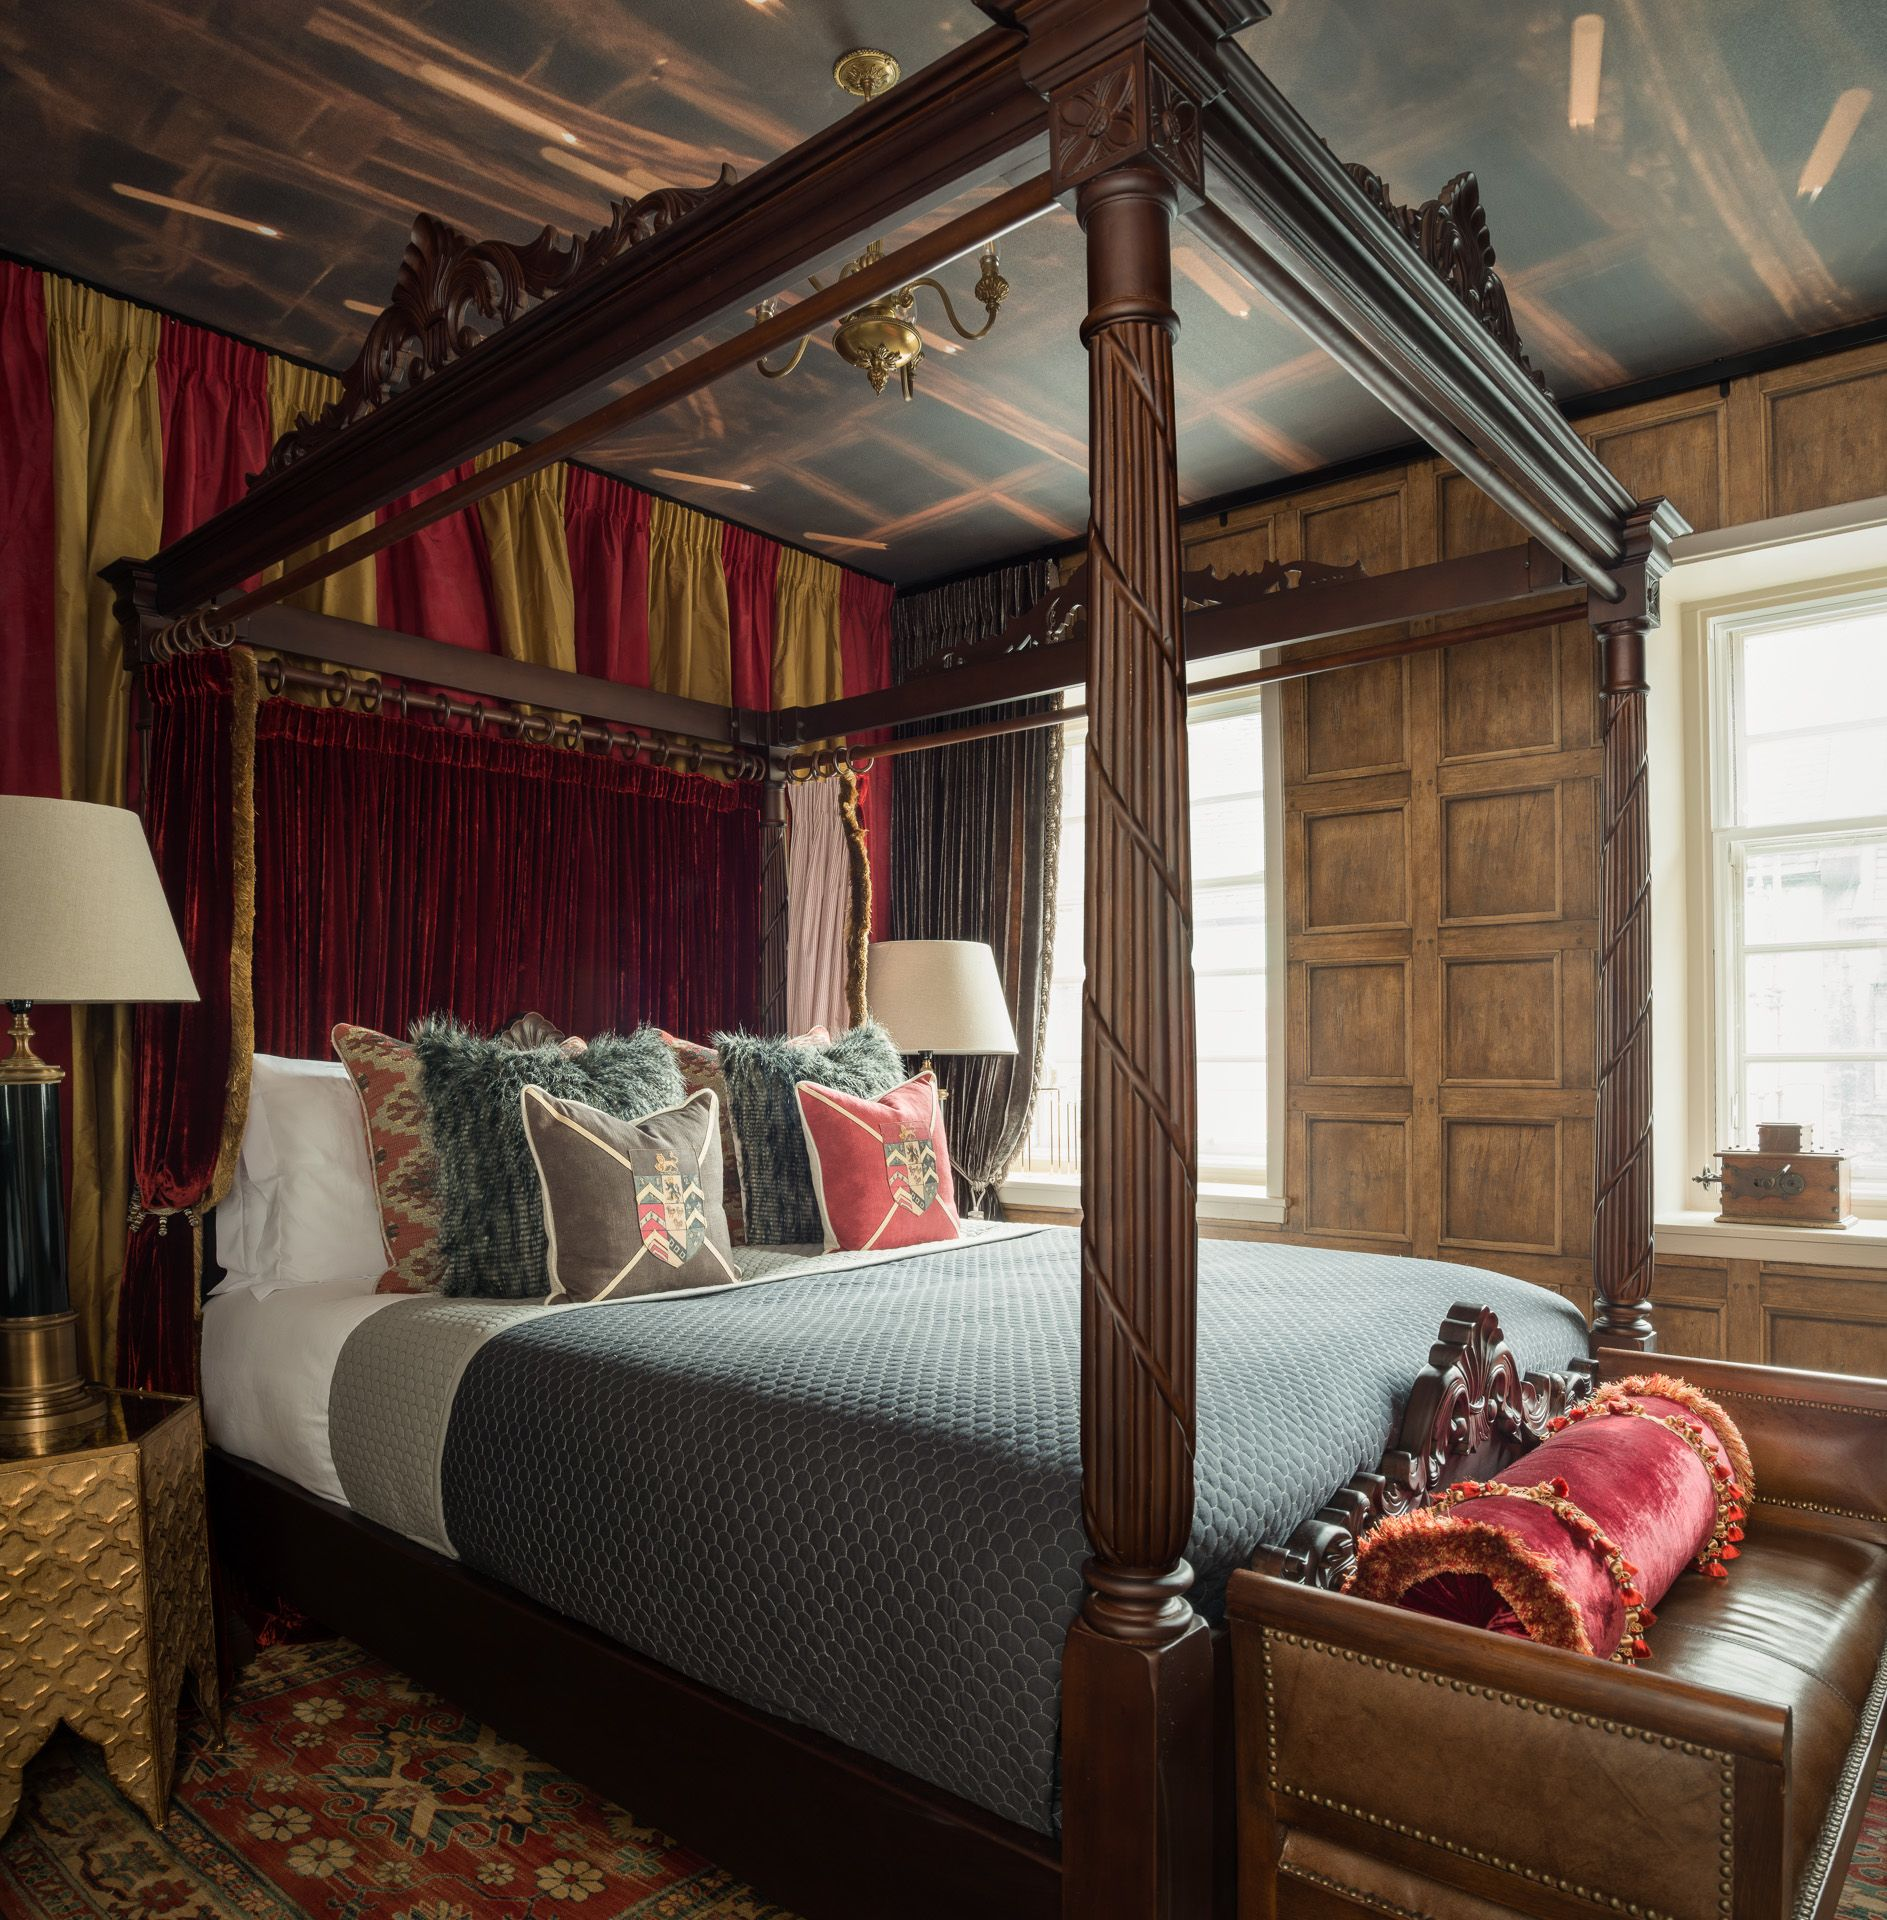 You Can Now Stay In This Luxury Harry Potter Themed Apartment In Edinburgh